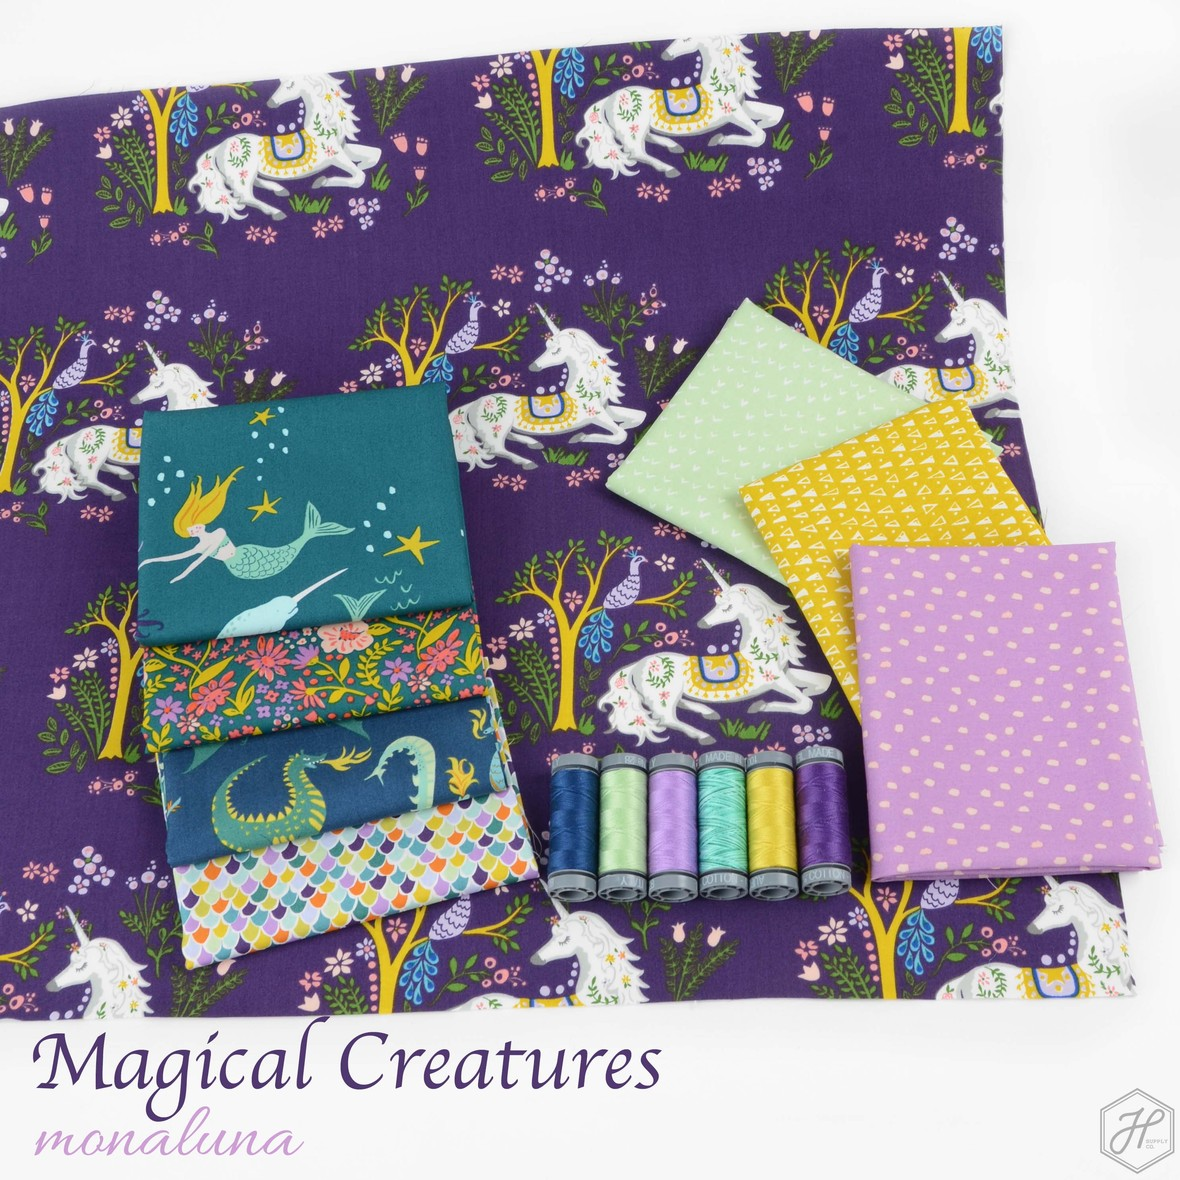 Magical Creatures Fabric Poster Monaluna at Hawthorne Supply Co